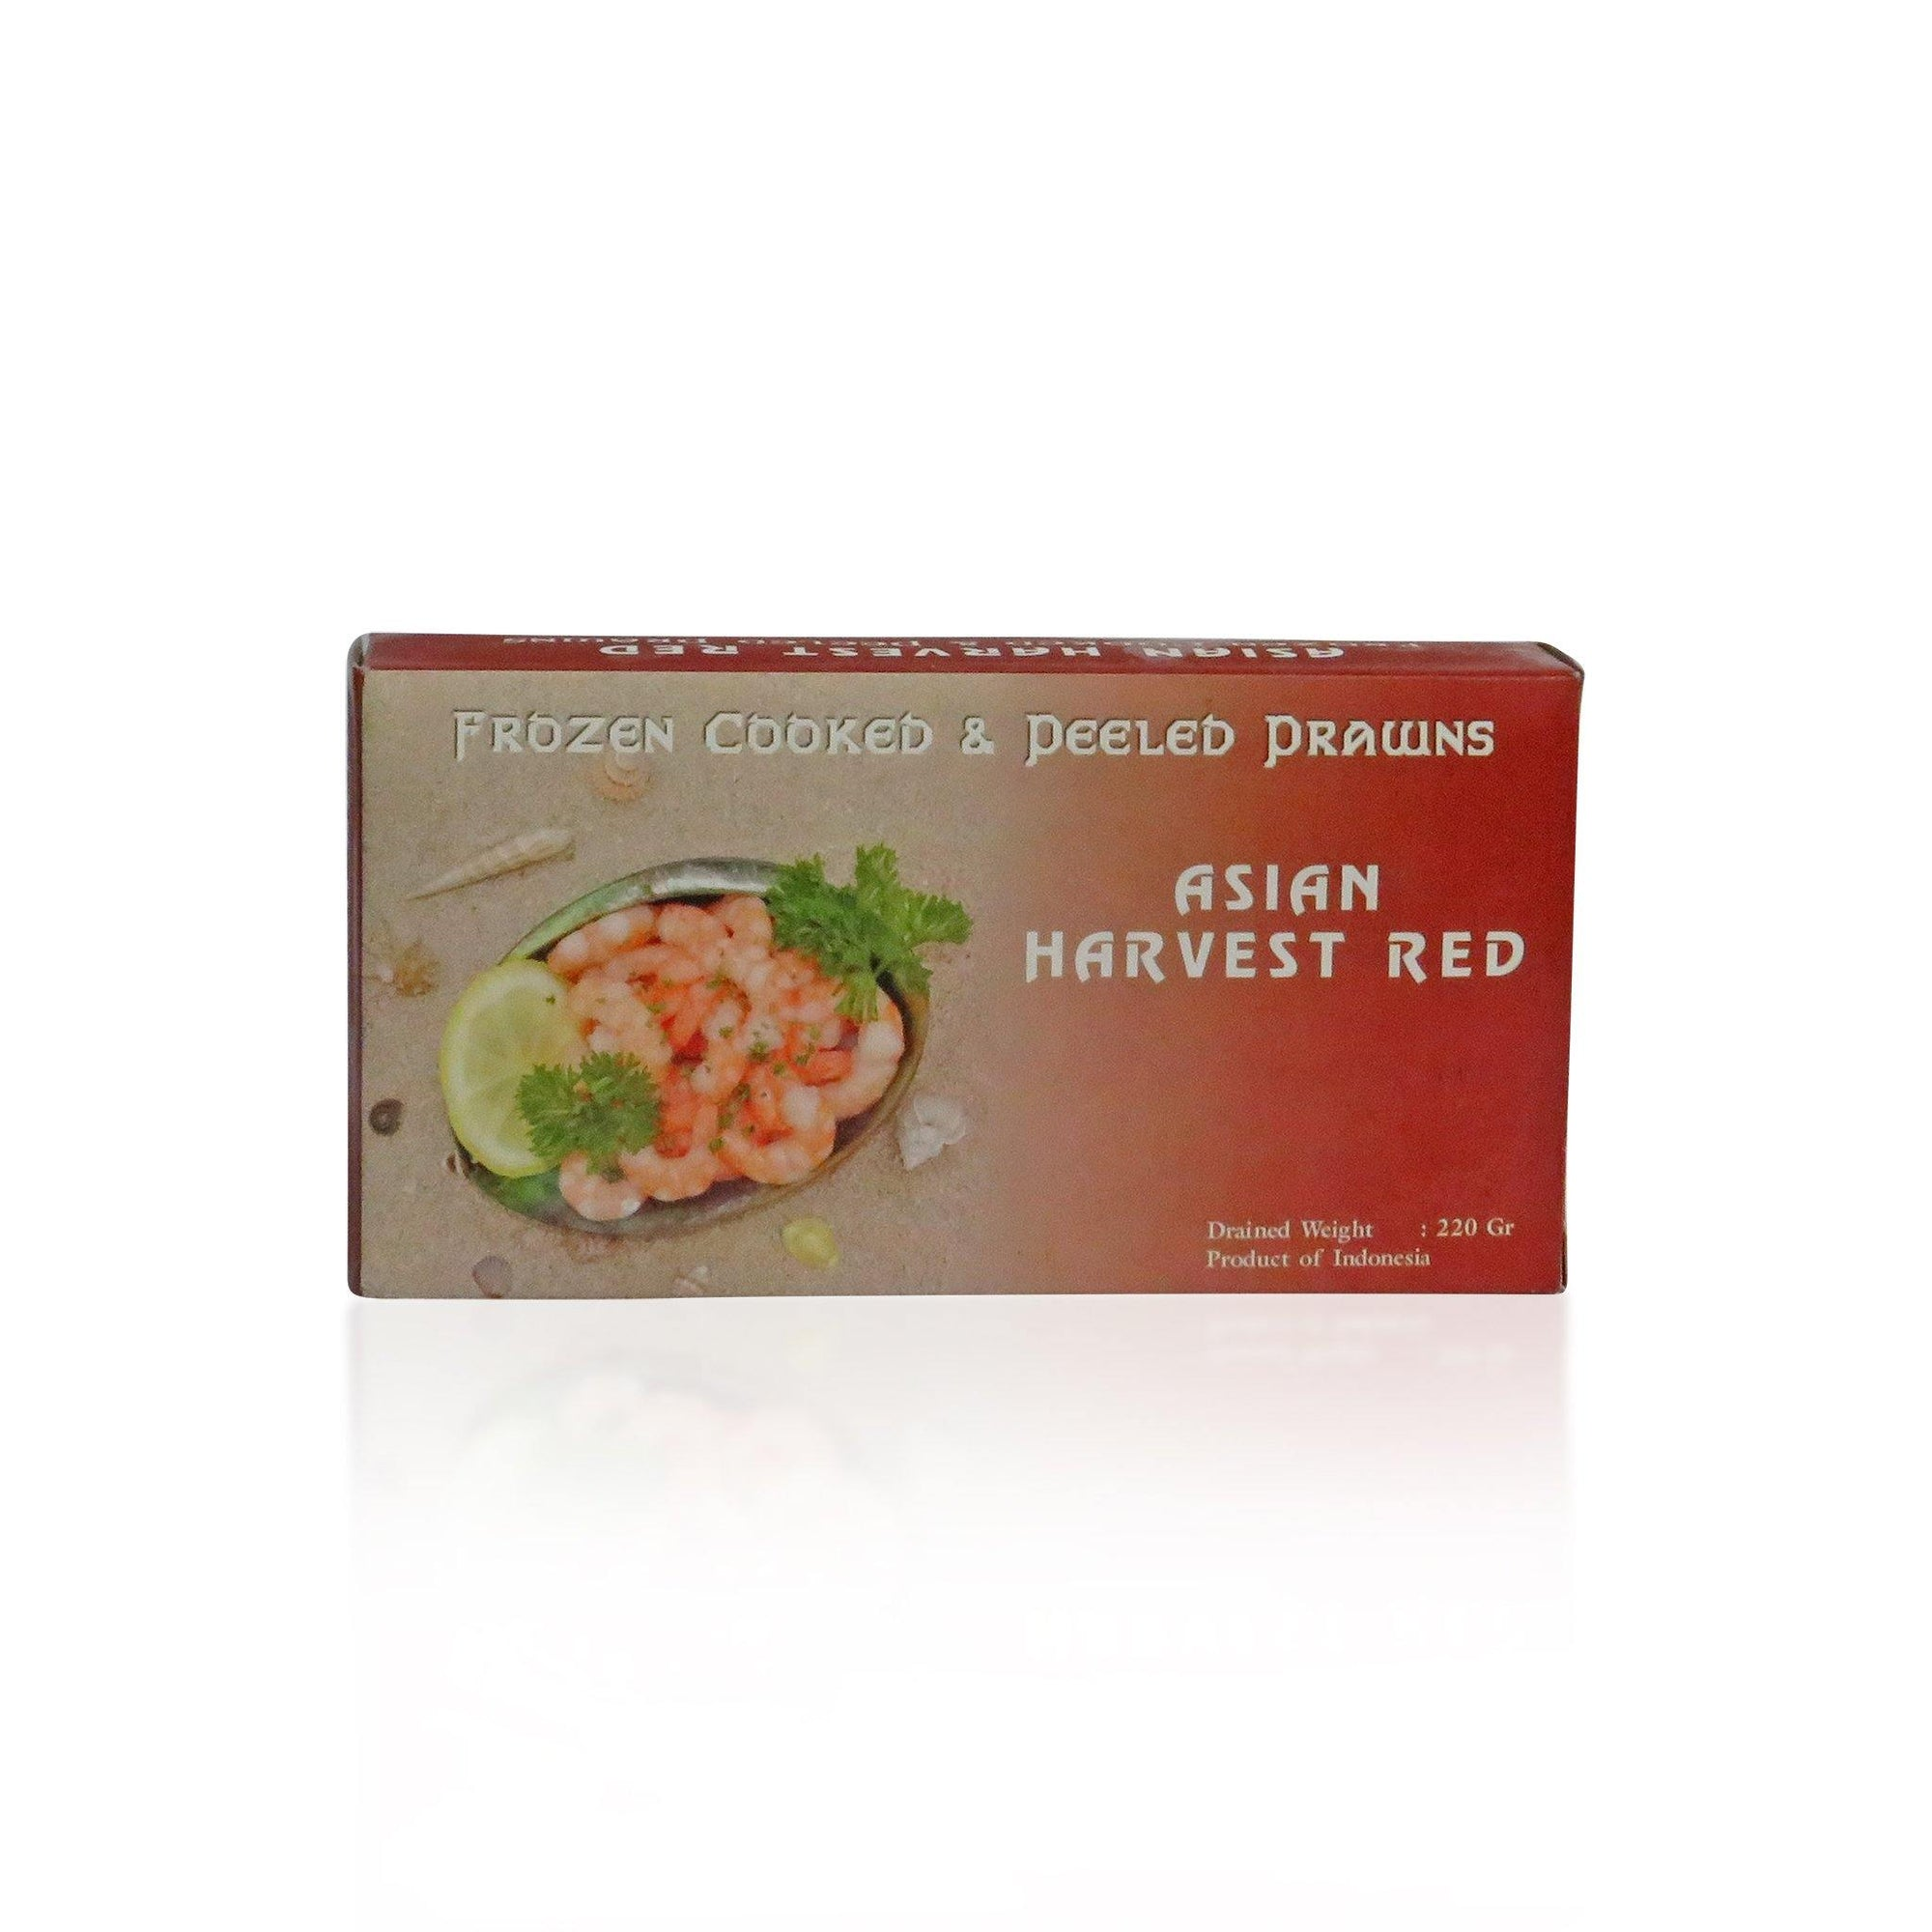 Frozen Cooked and Peeled Shrimp - Asian Harvest